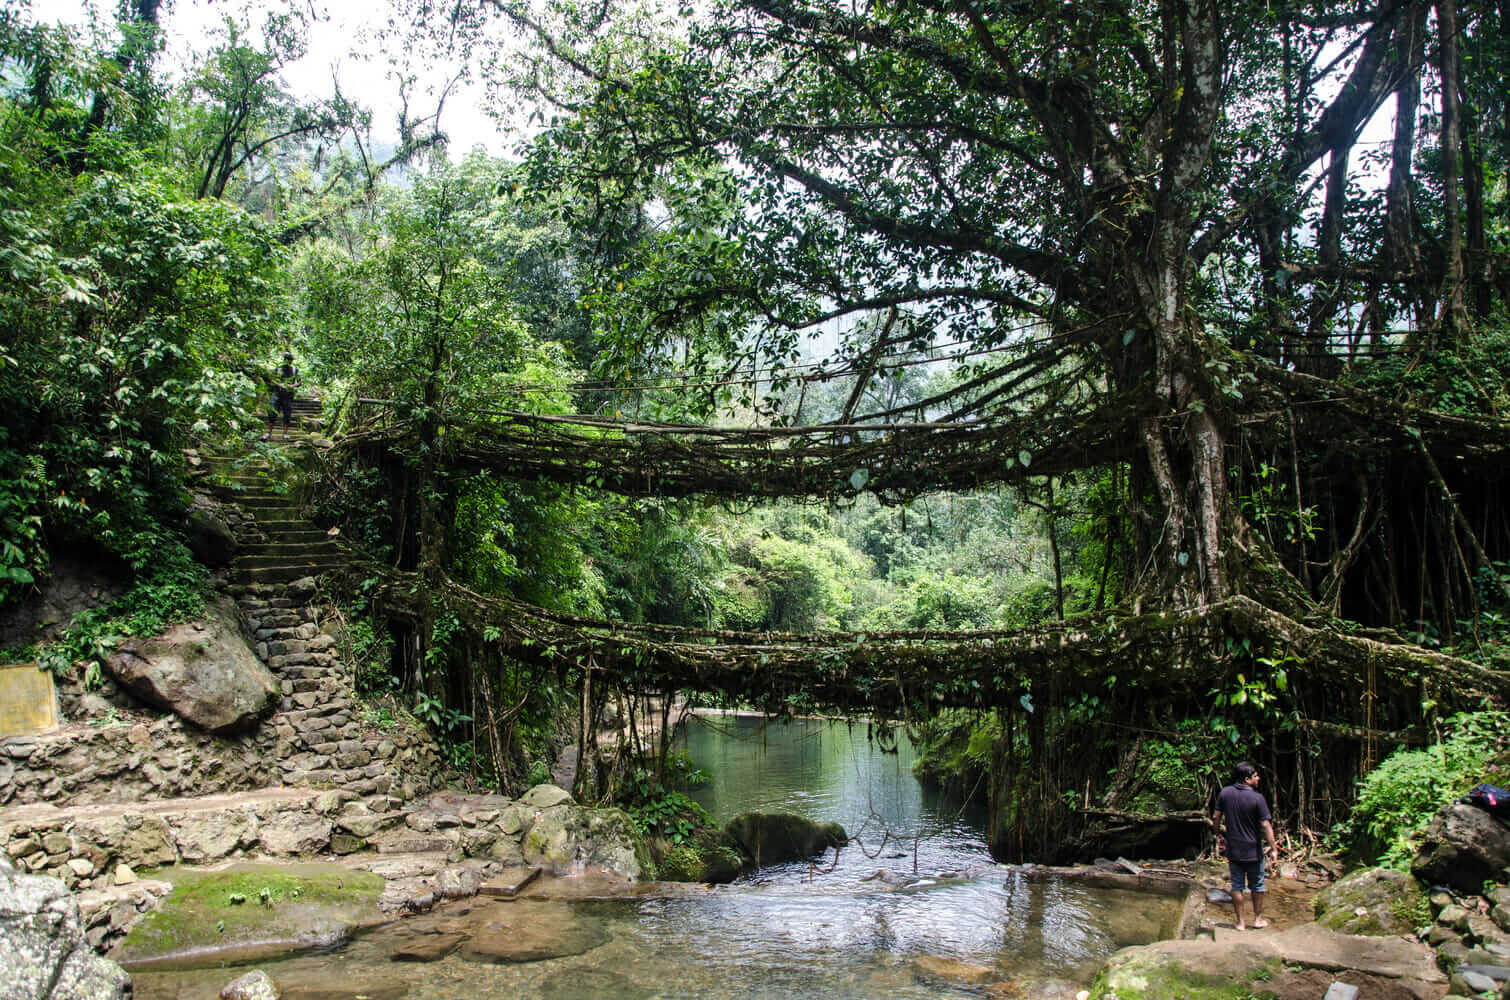 Living Root Bridge in Meghalaya, India.